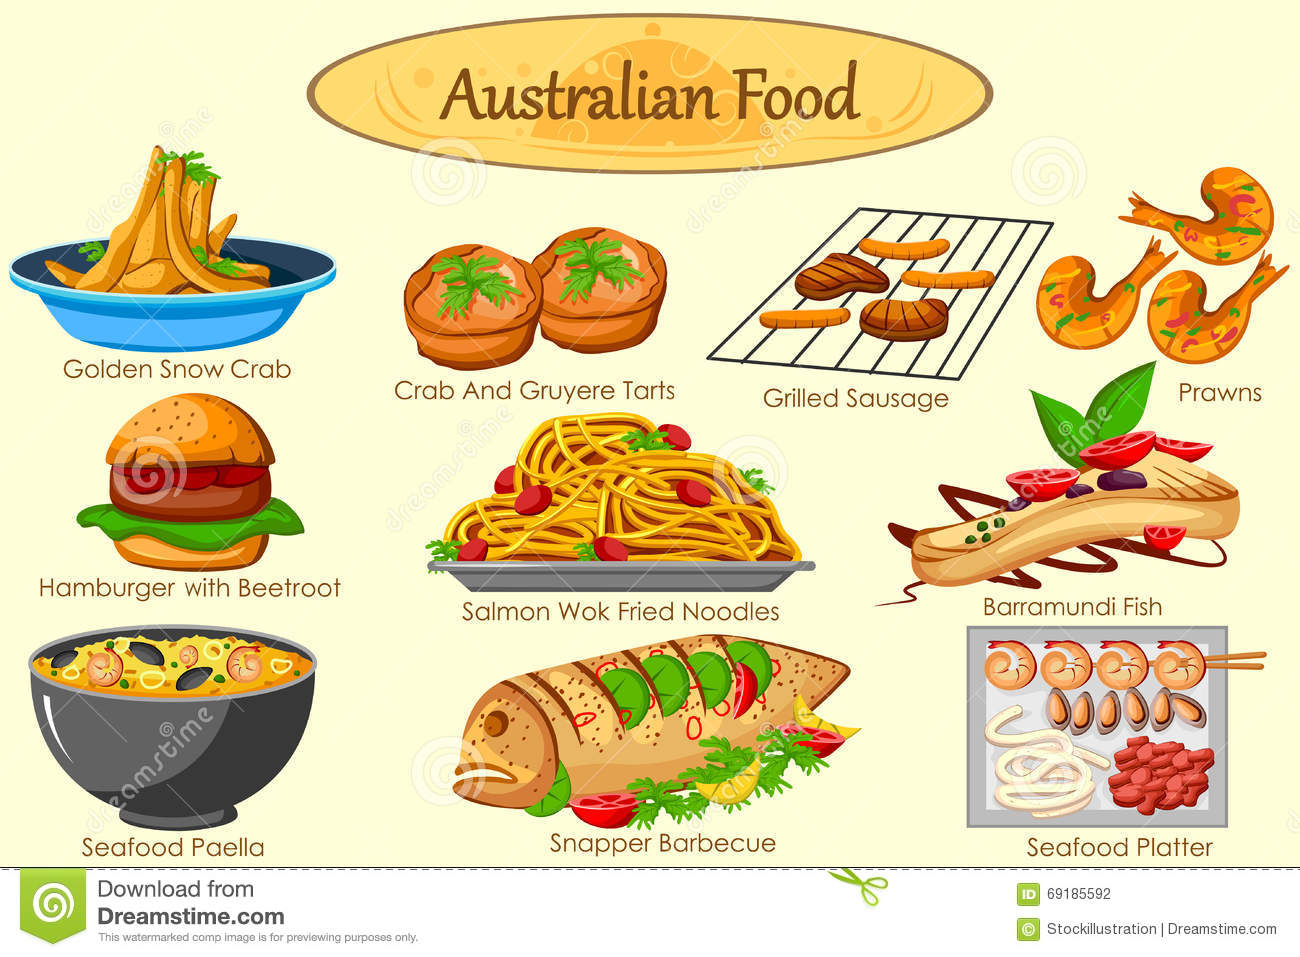 Barramundi cartoons illustrations vector stock images for Australian food cuisine